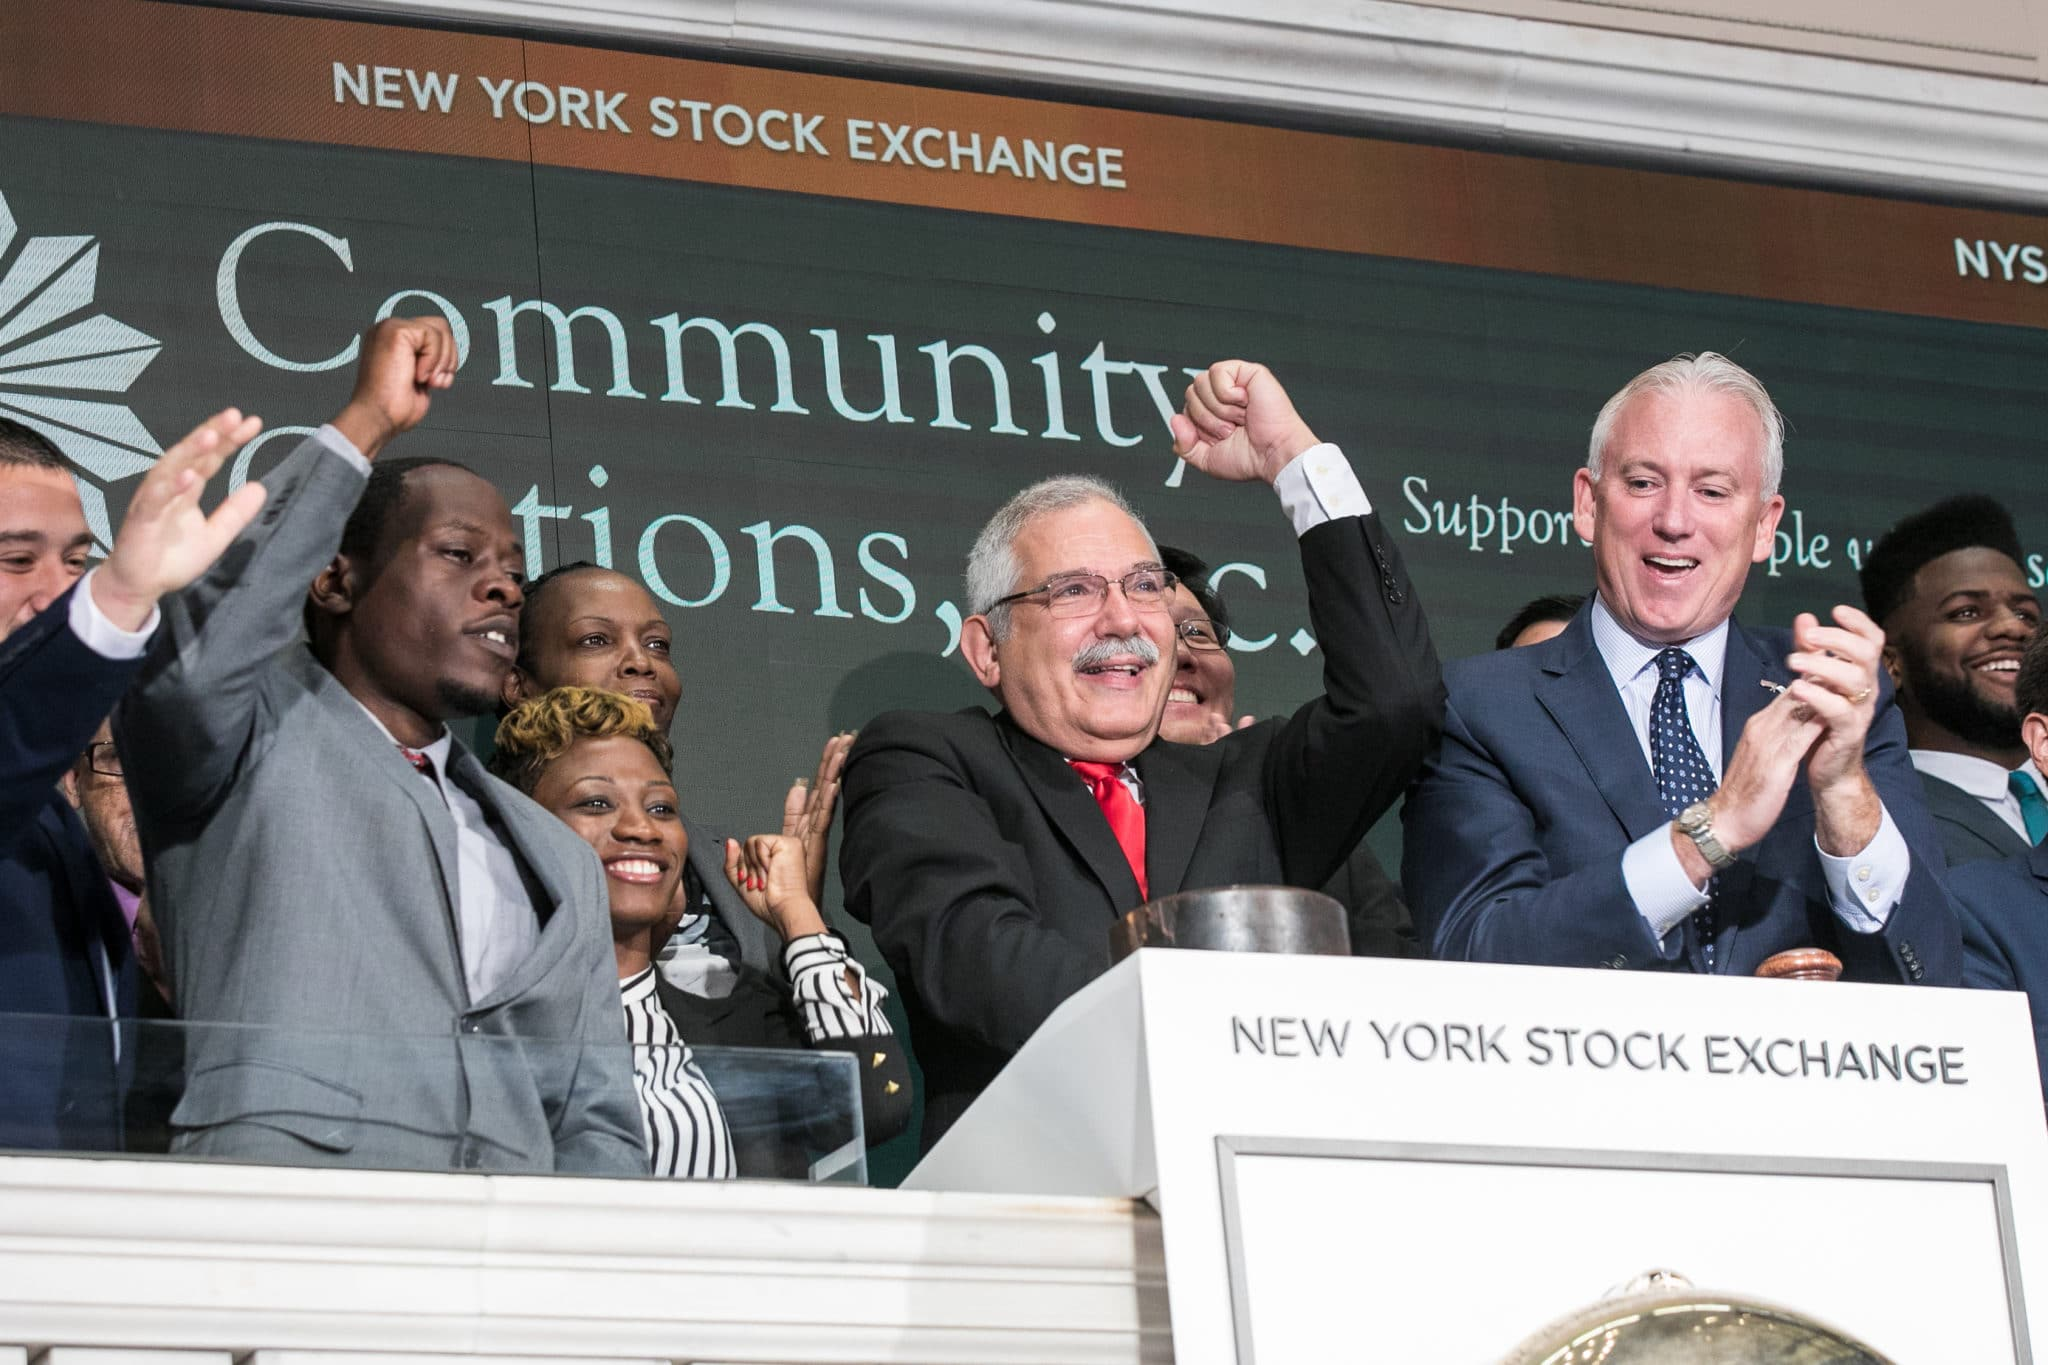 On Thursday, August 17, 2017, The New York Stock Exchange welcomes executives and guests of Community Options, Inc. to celebrate 10 years of providing housing and employment support to individuals with intellectual and developmental disabilities in South Carolina, Community Options will hold its 11th Annual iMatter Conference at the Francis Marion Hotel from September 24-27. To honor the occasion, Phil Lian,Board Member, rings the NYSE Opening Bell®.